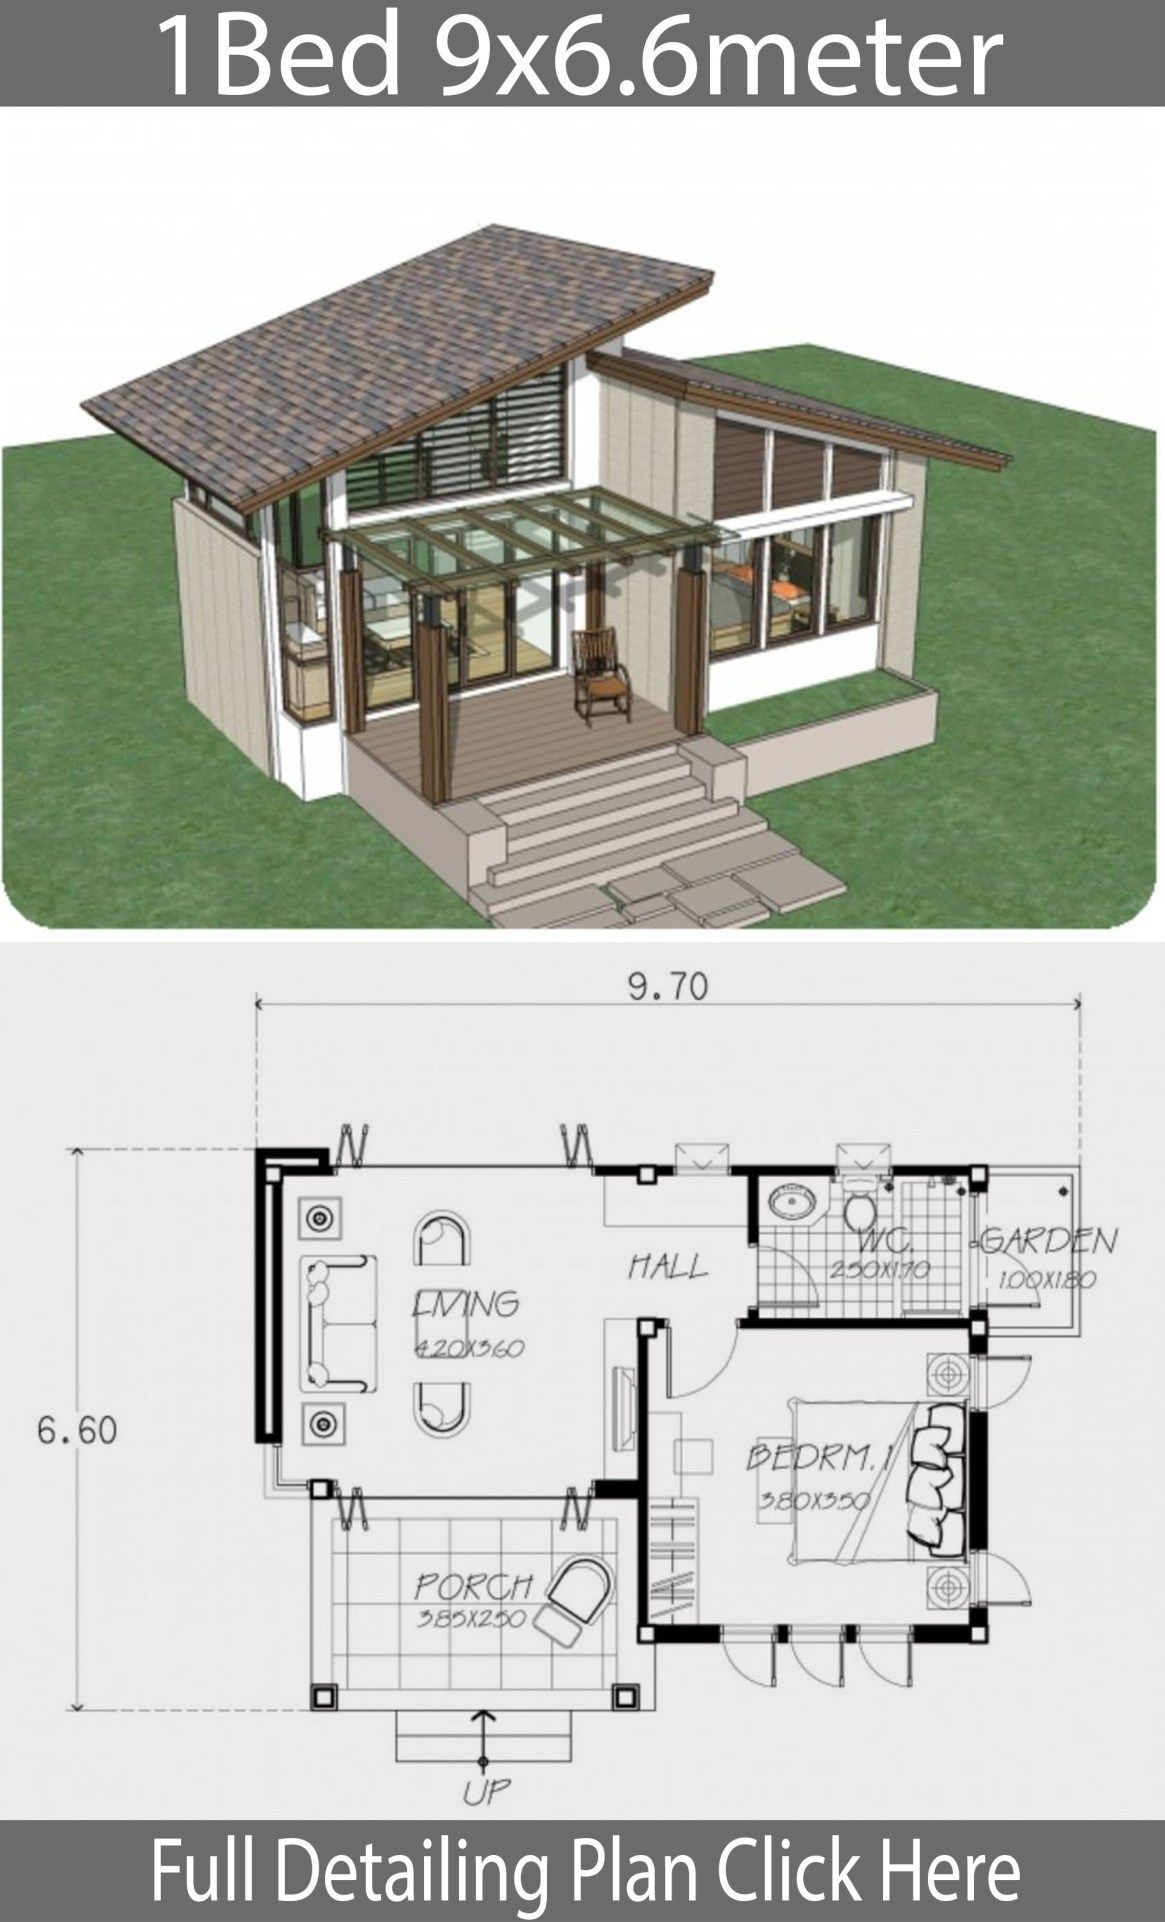 Small Home Design Plan 9x6 6m With One Bedroom In 2020 Small House Design Plans Small House Style Sims House Plans